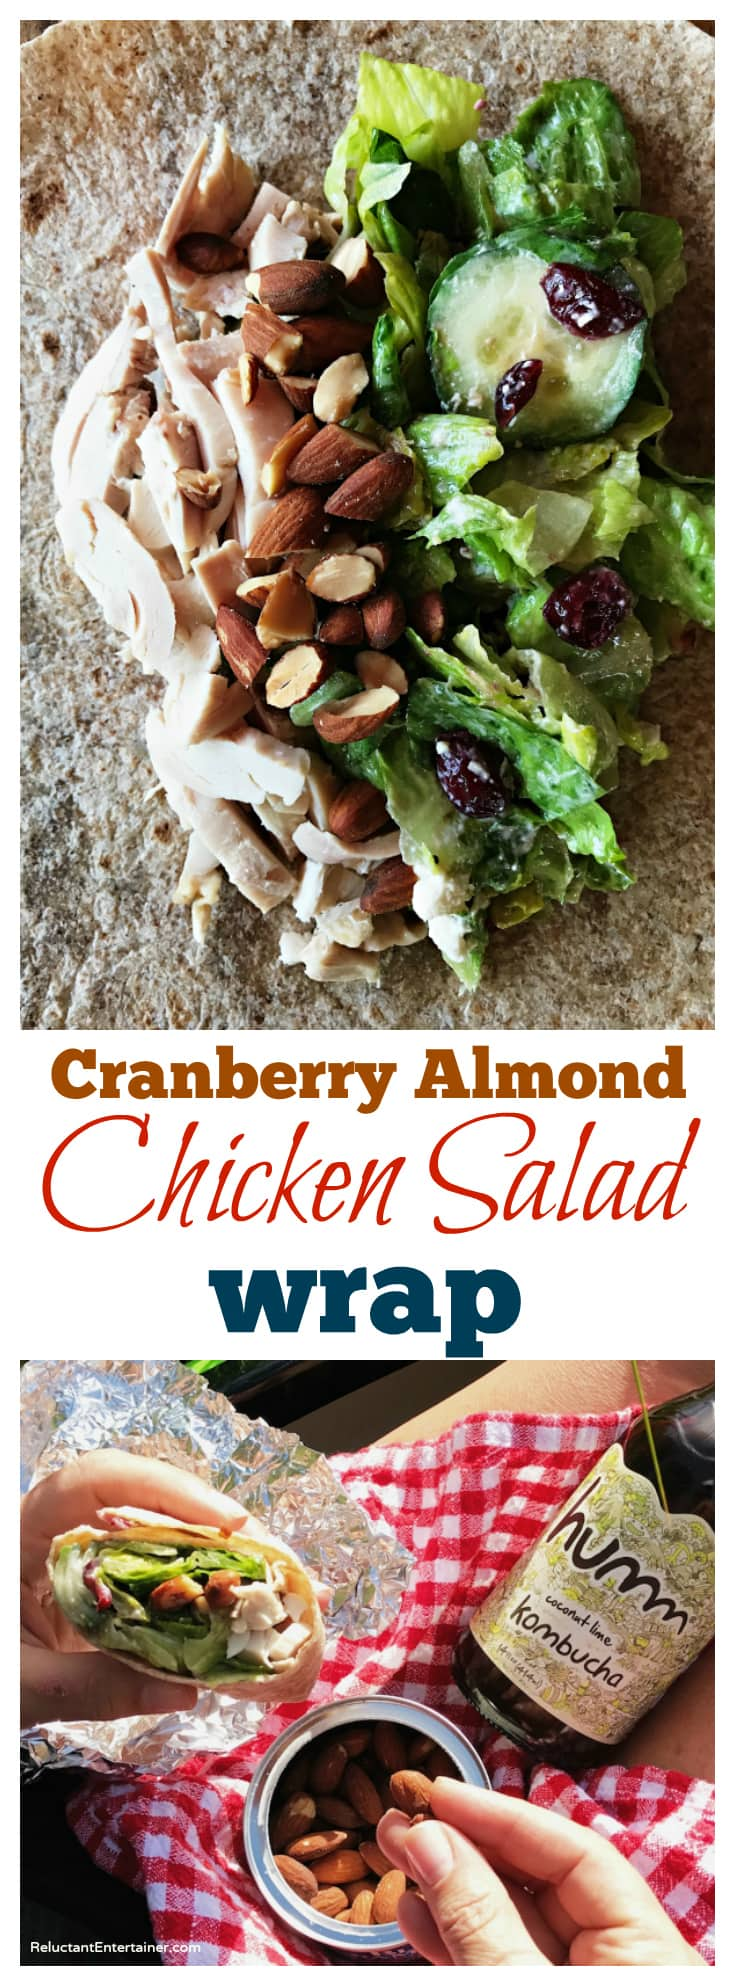 Cranberry Almond Chicken Salad Wrap in partnership with Blue Diamond Almonds